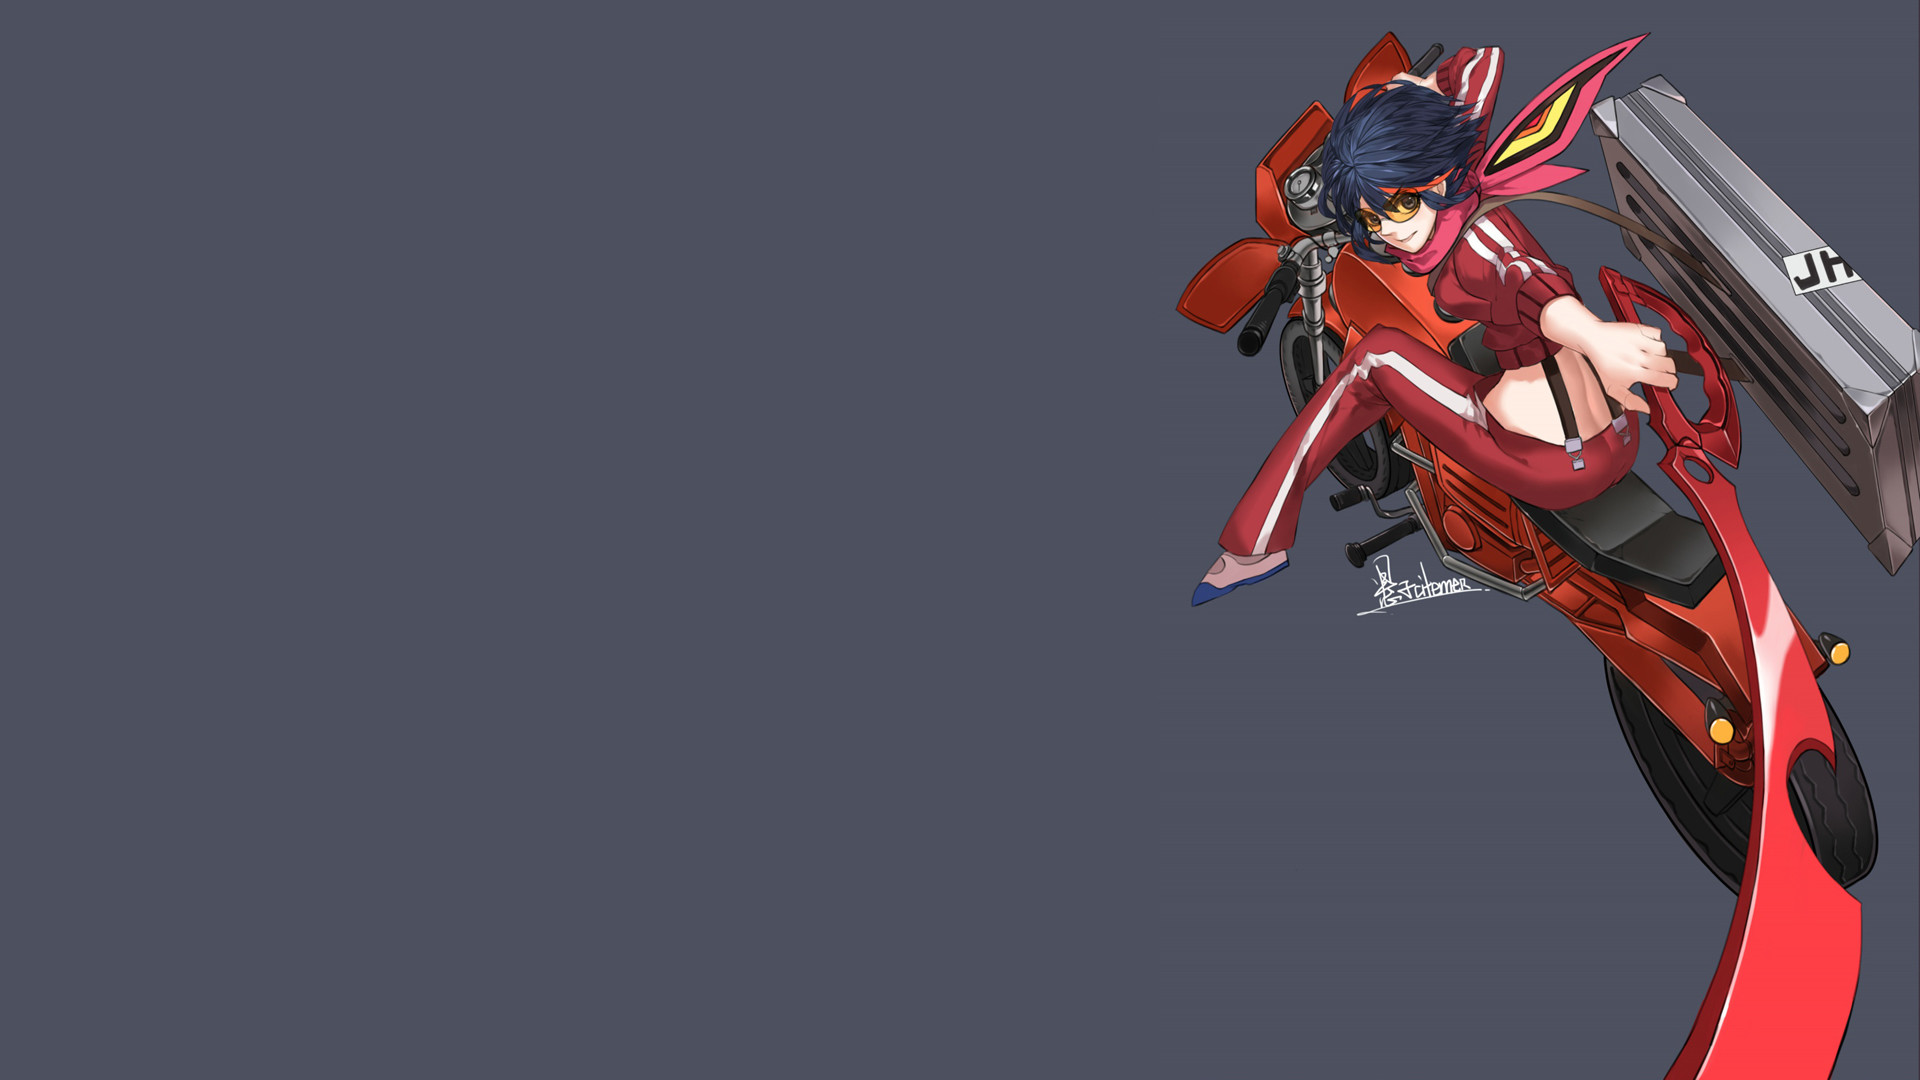 Kill La Kill Wallpaper Hd 76 Images